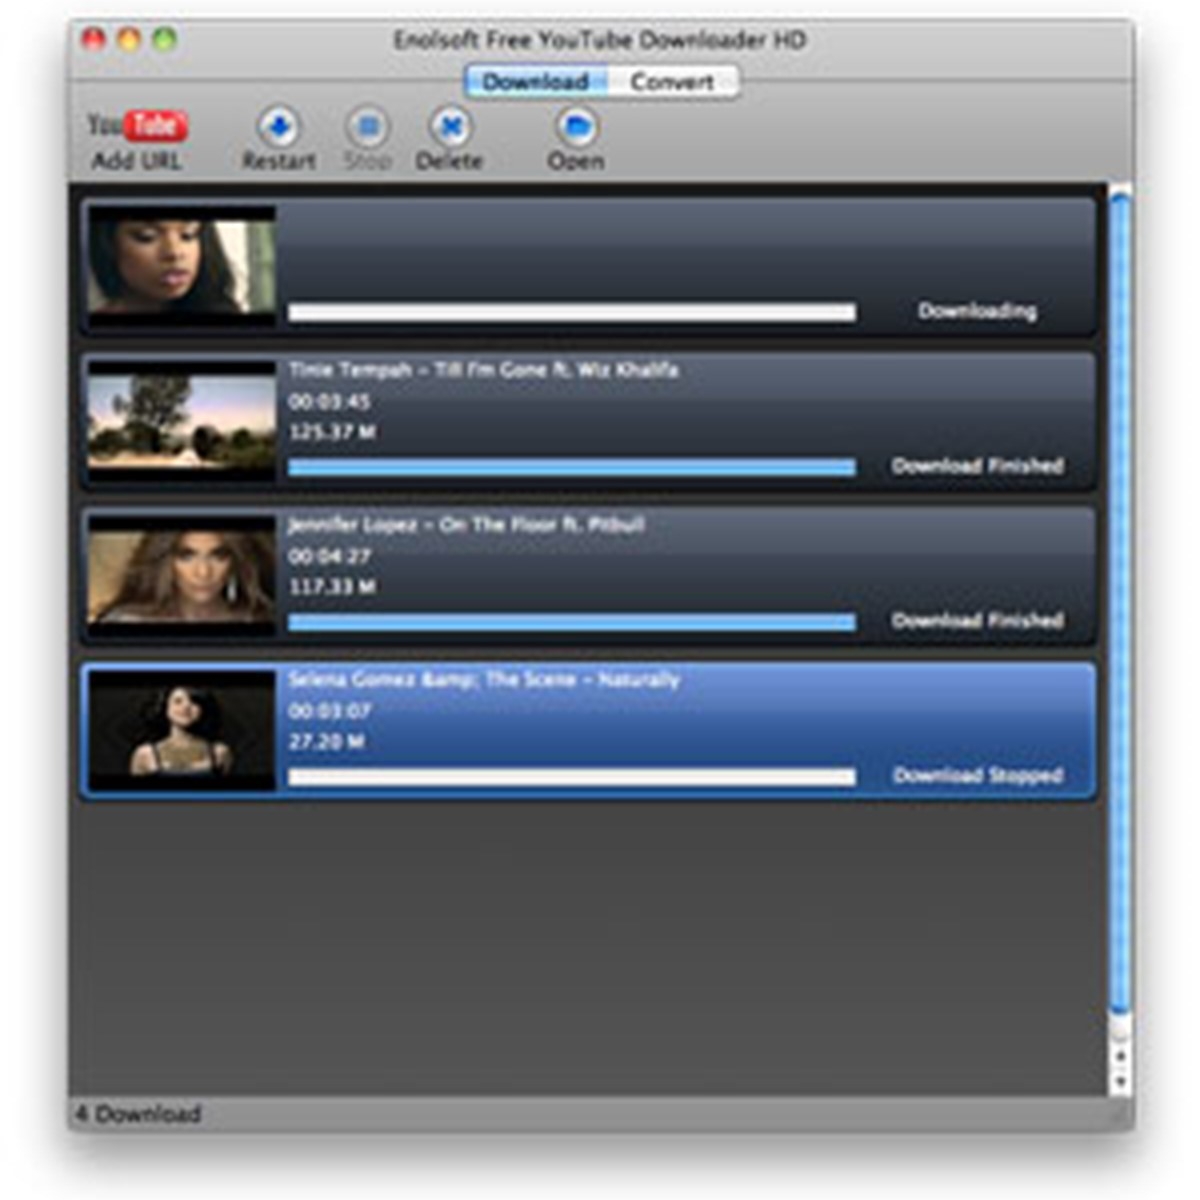 youtube software downloader hd free download